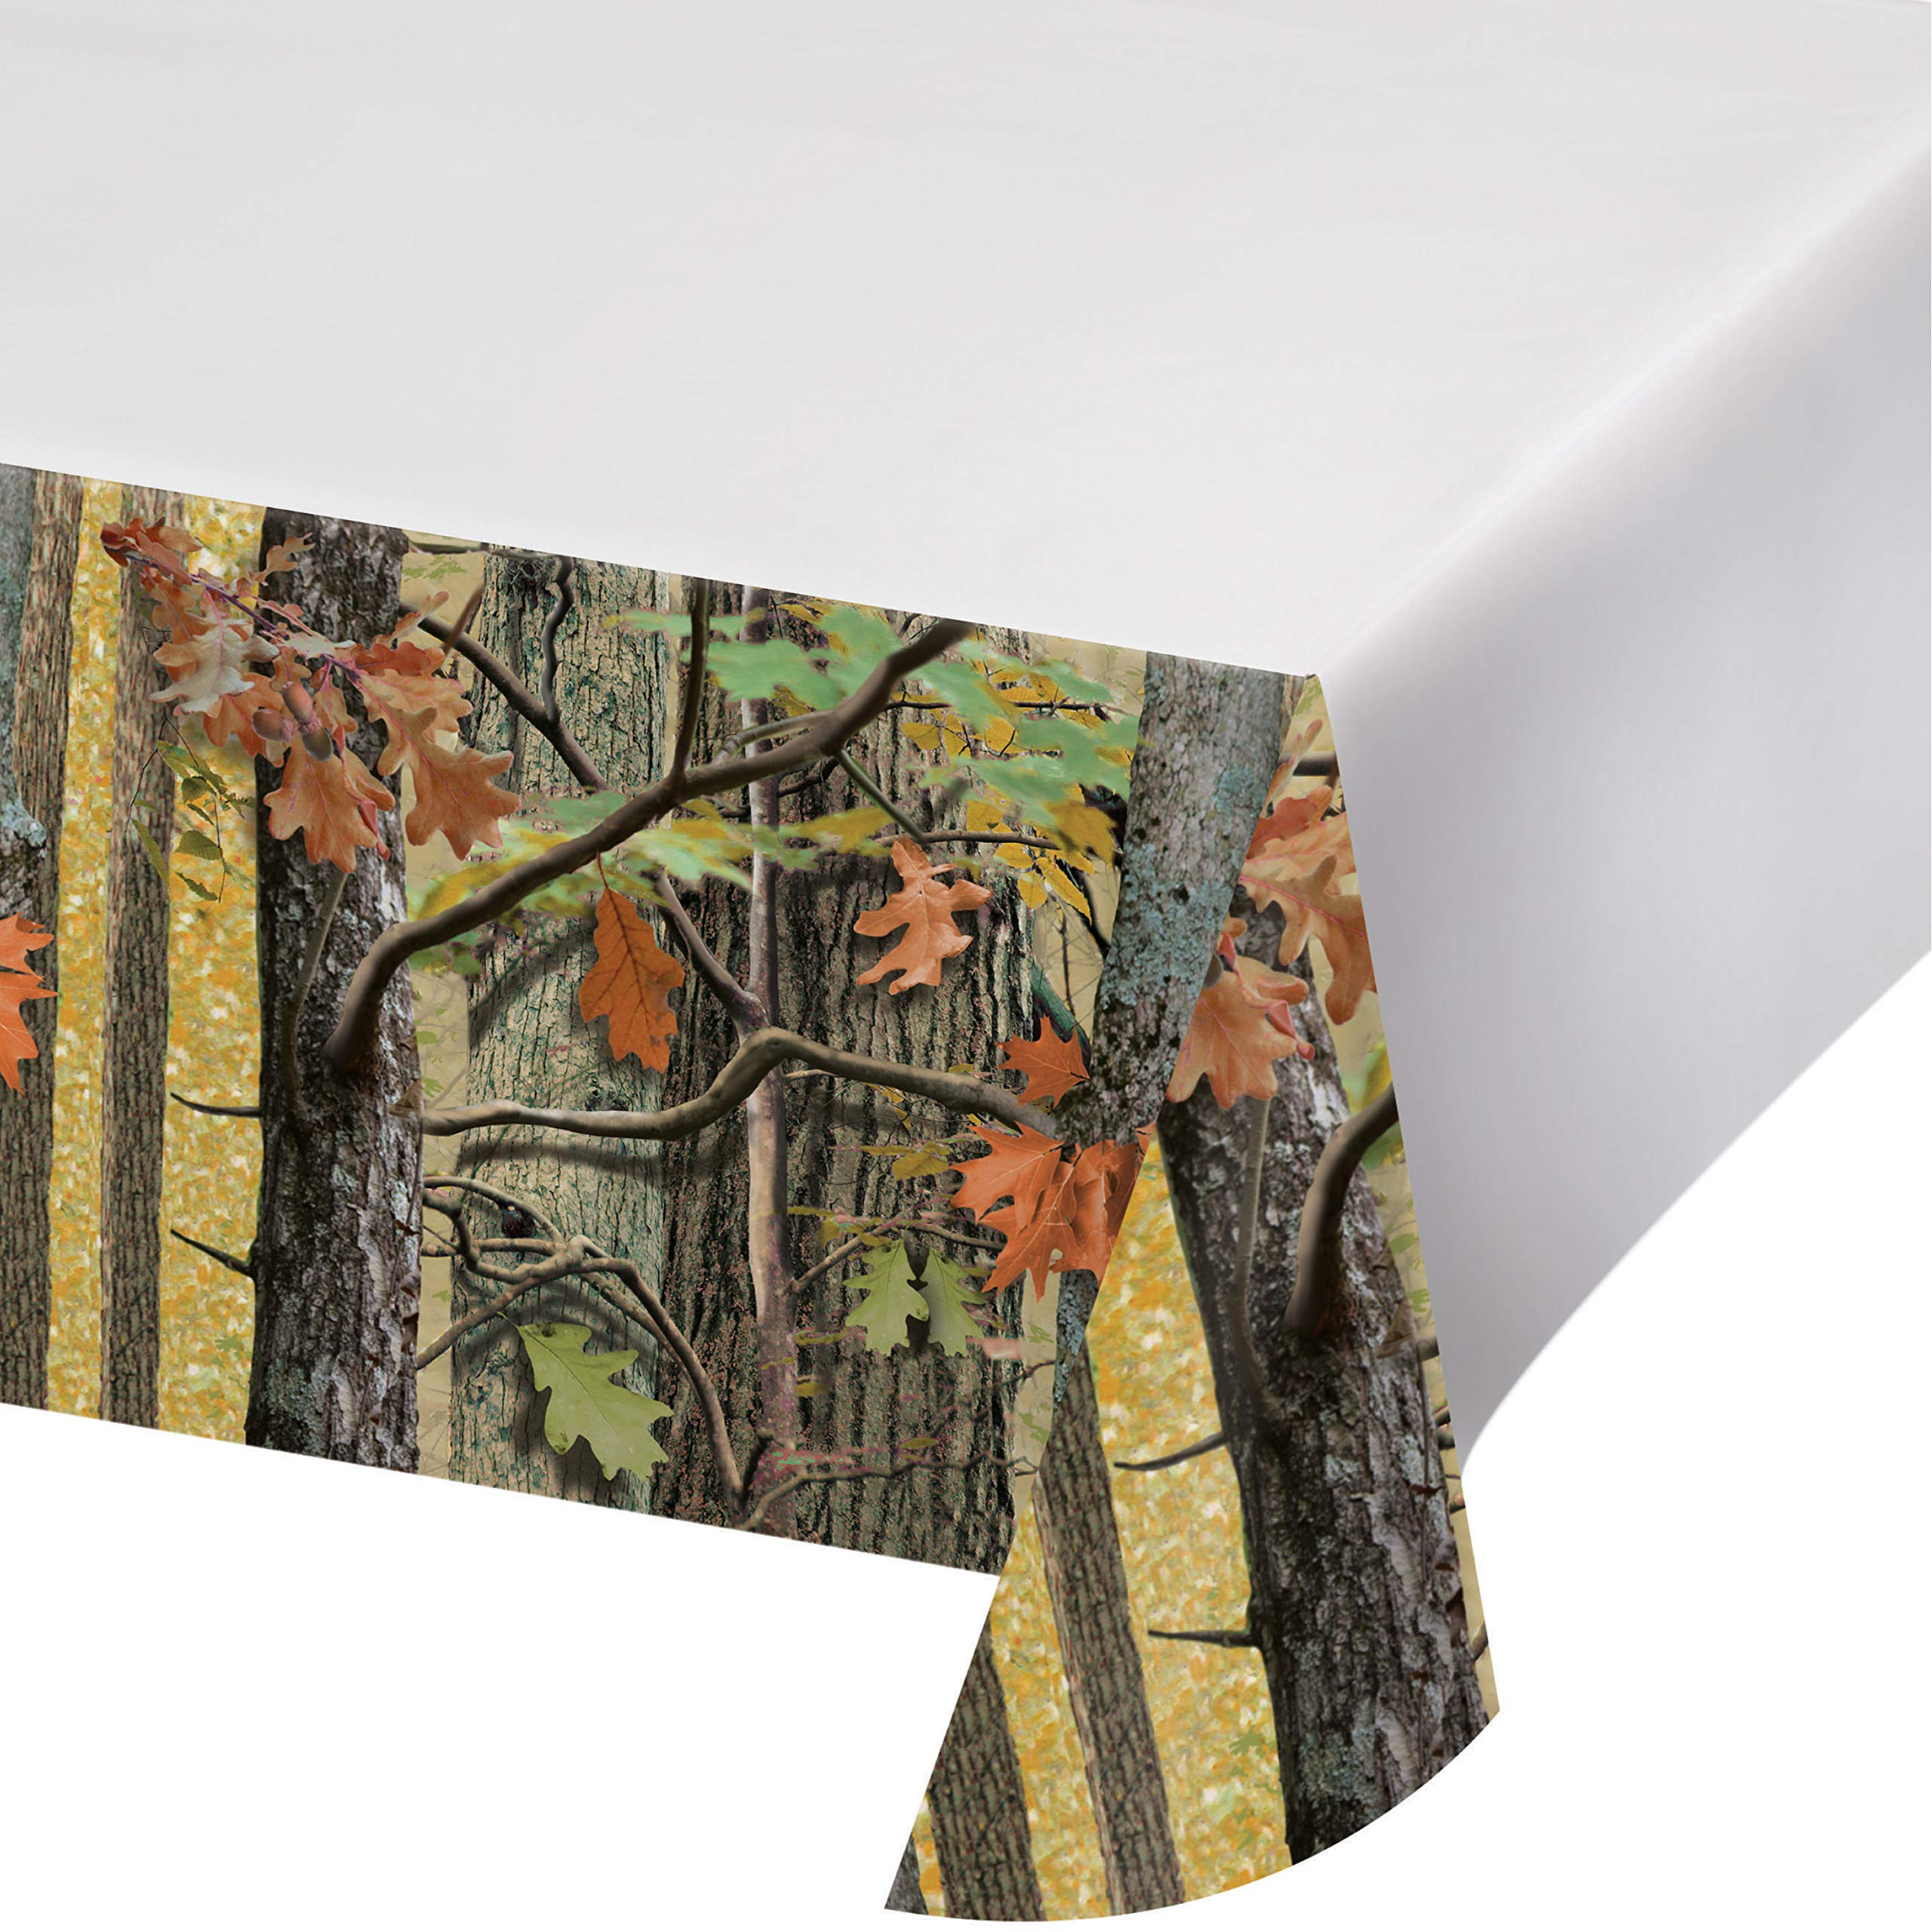 Hunting Camo Plastic Tablecloths, 3 ct by Creative Converting